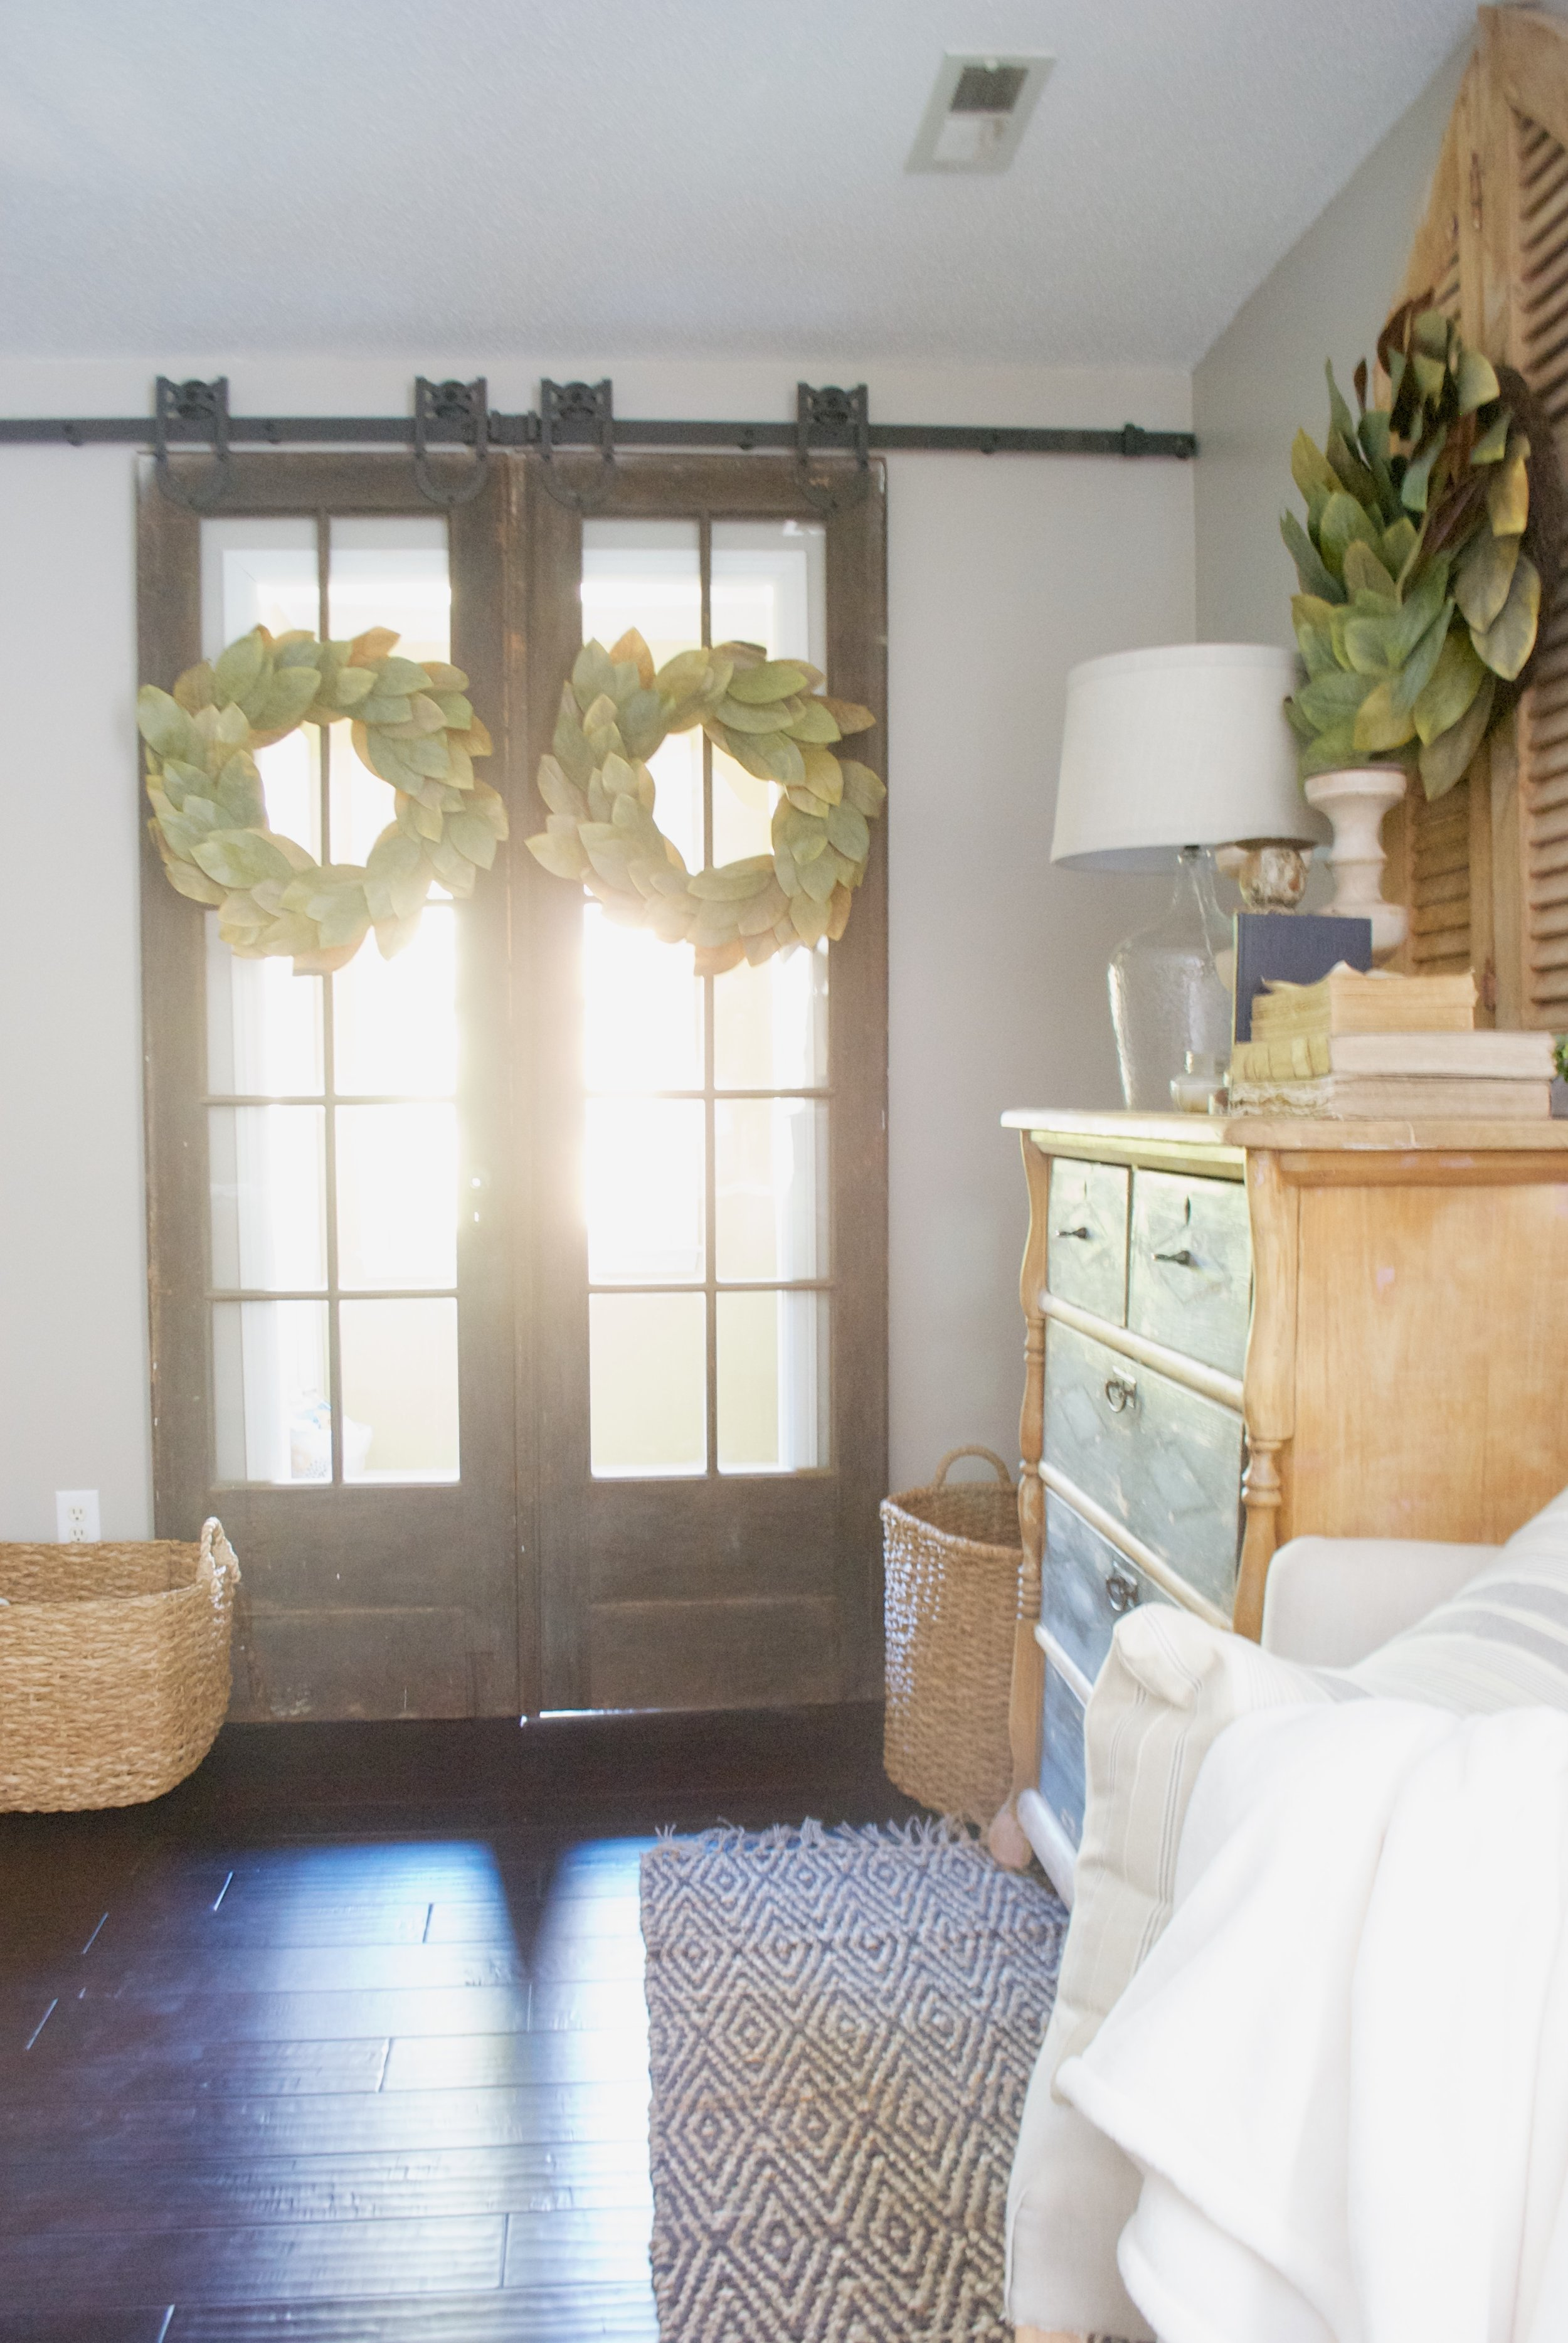 Plum Pretty Decor and Design Farmhouse Master Bedroom Tour- French Doors and Magnolia Wreaths